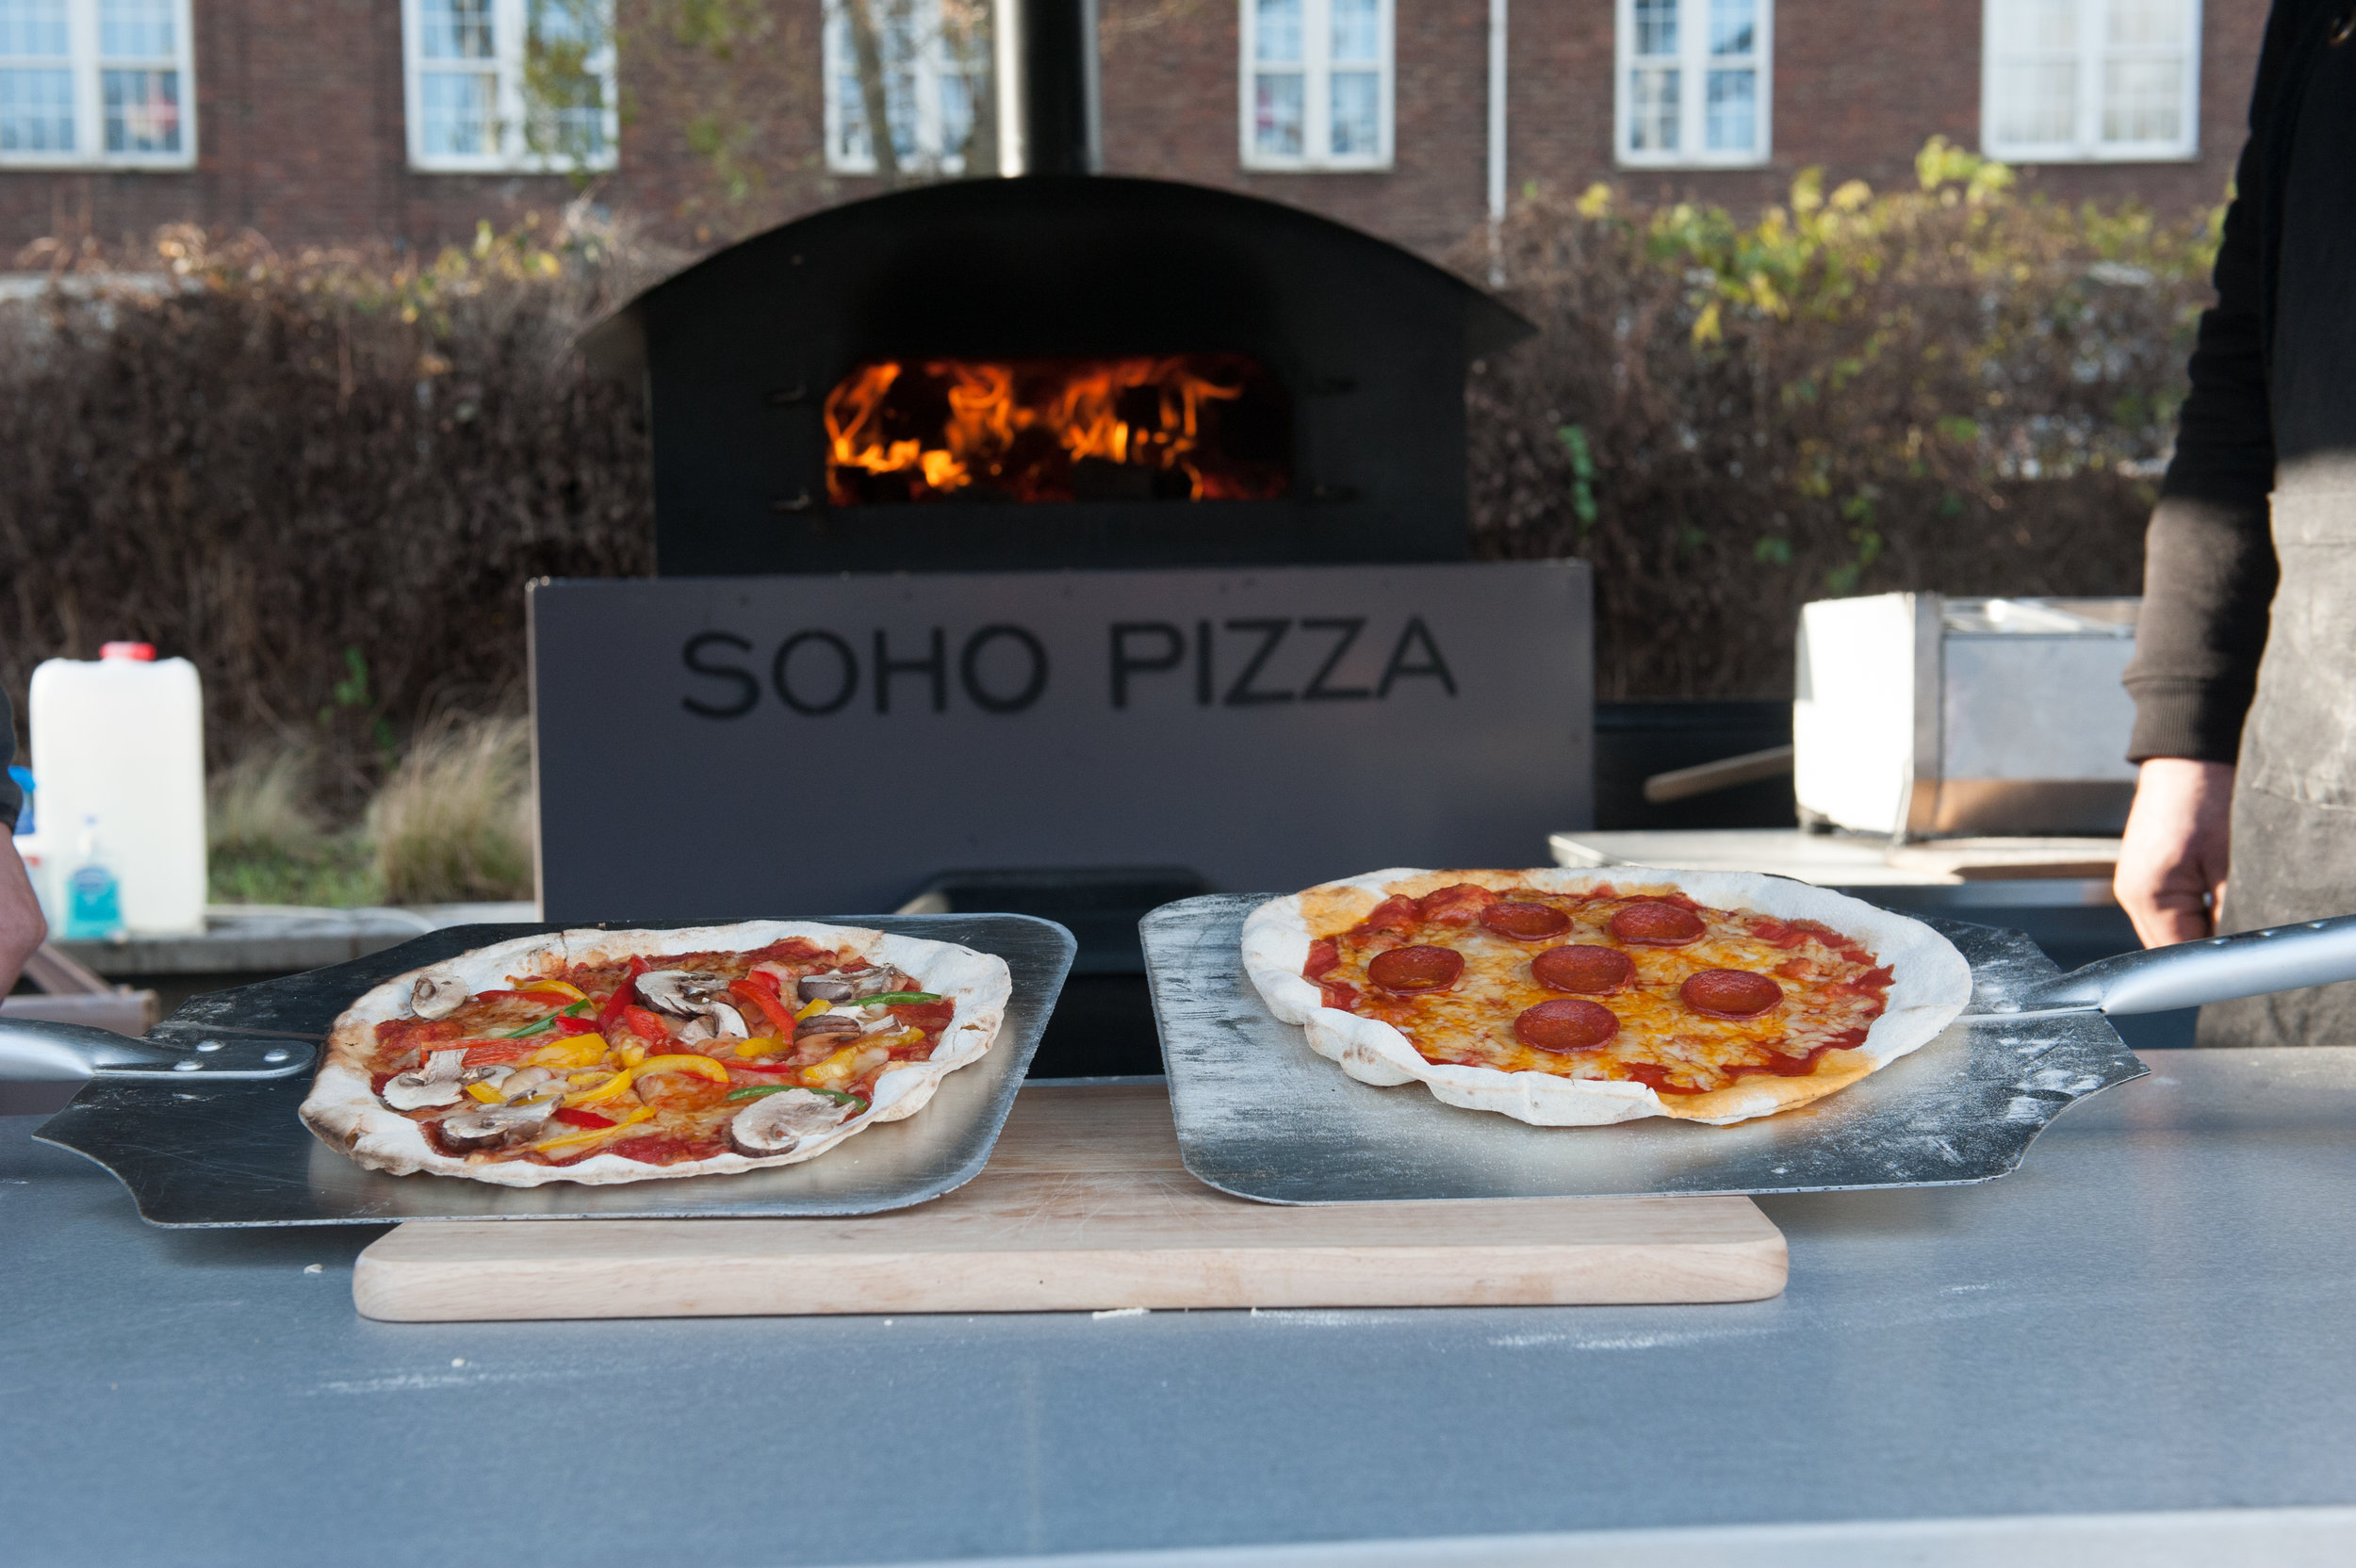 Soho Pizza, Wedding Pizza, Wedding Catering, Wedding Catering Alternatives